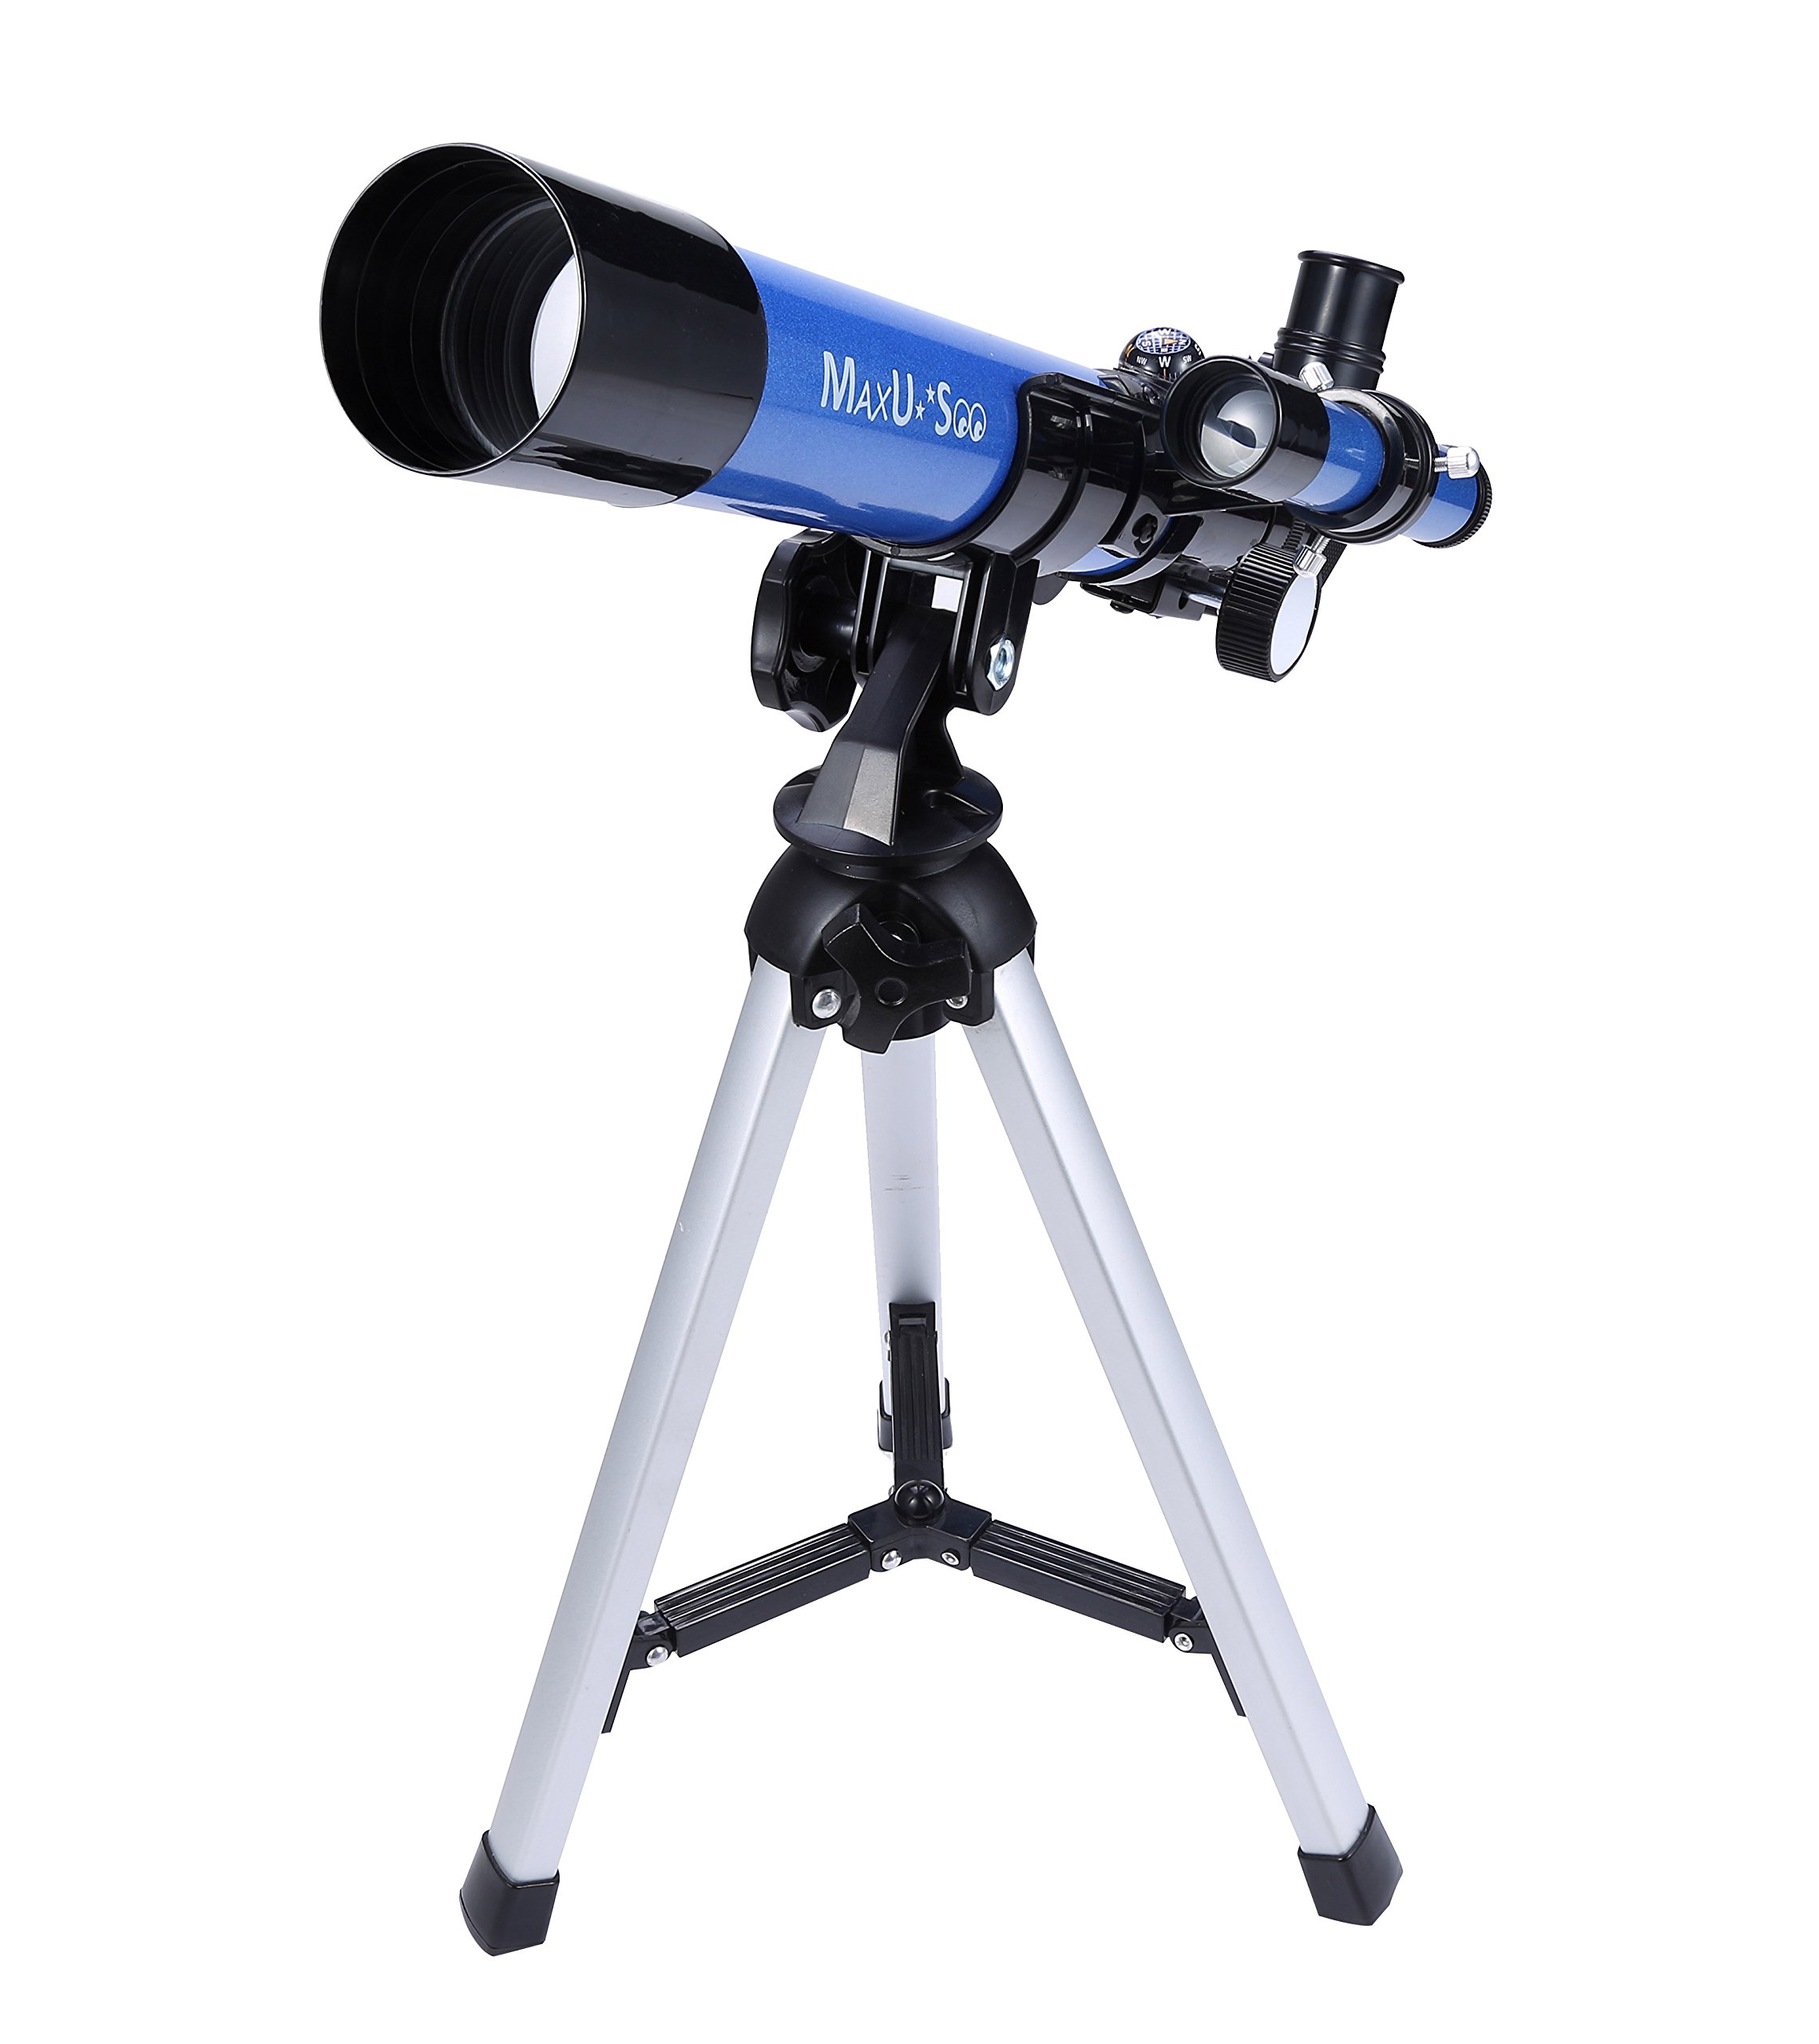 MaxUSee Kids Telescope 400x40mm with Tripod & Finder Scope, Portable Telescope for Kids & Beginners, Travel Telescope with 3 Magnification Eyepieces and Moon Mirror